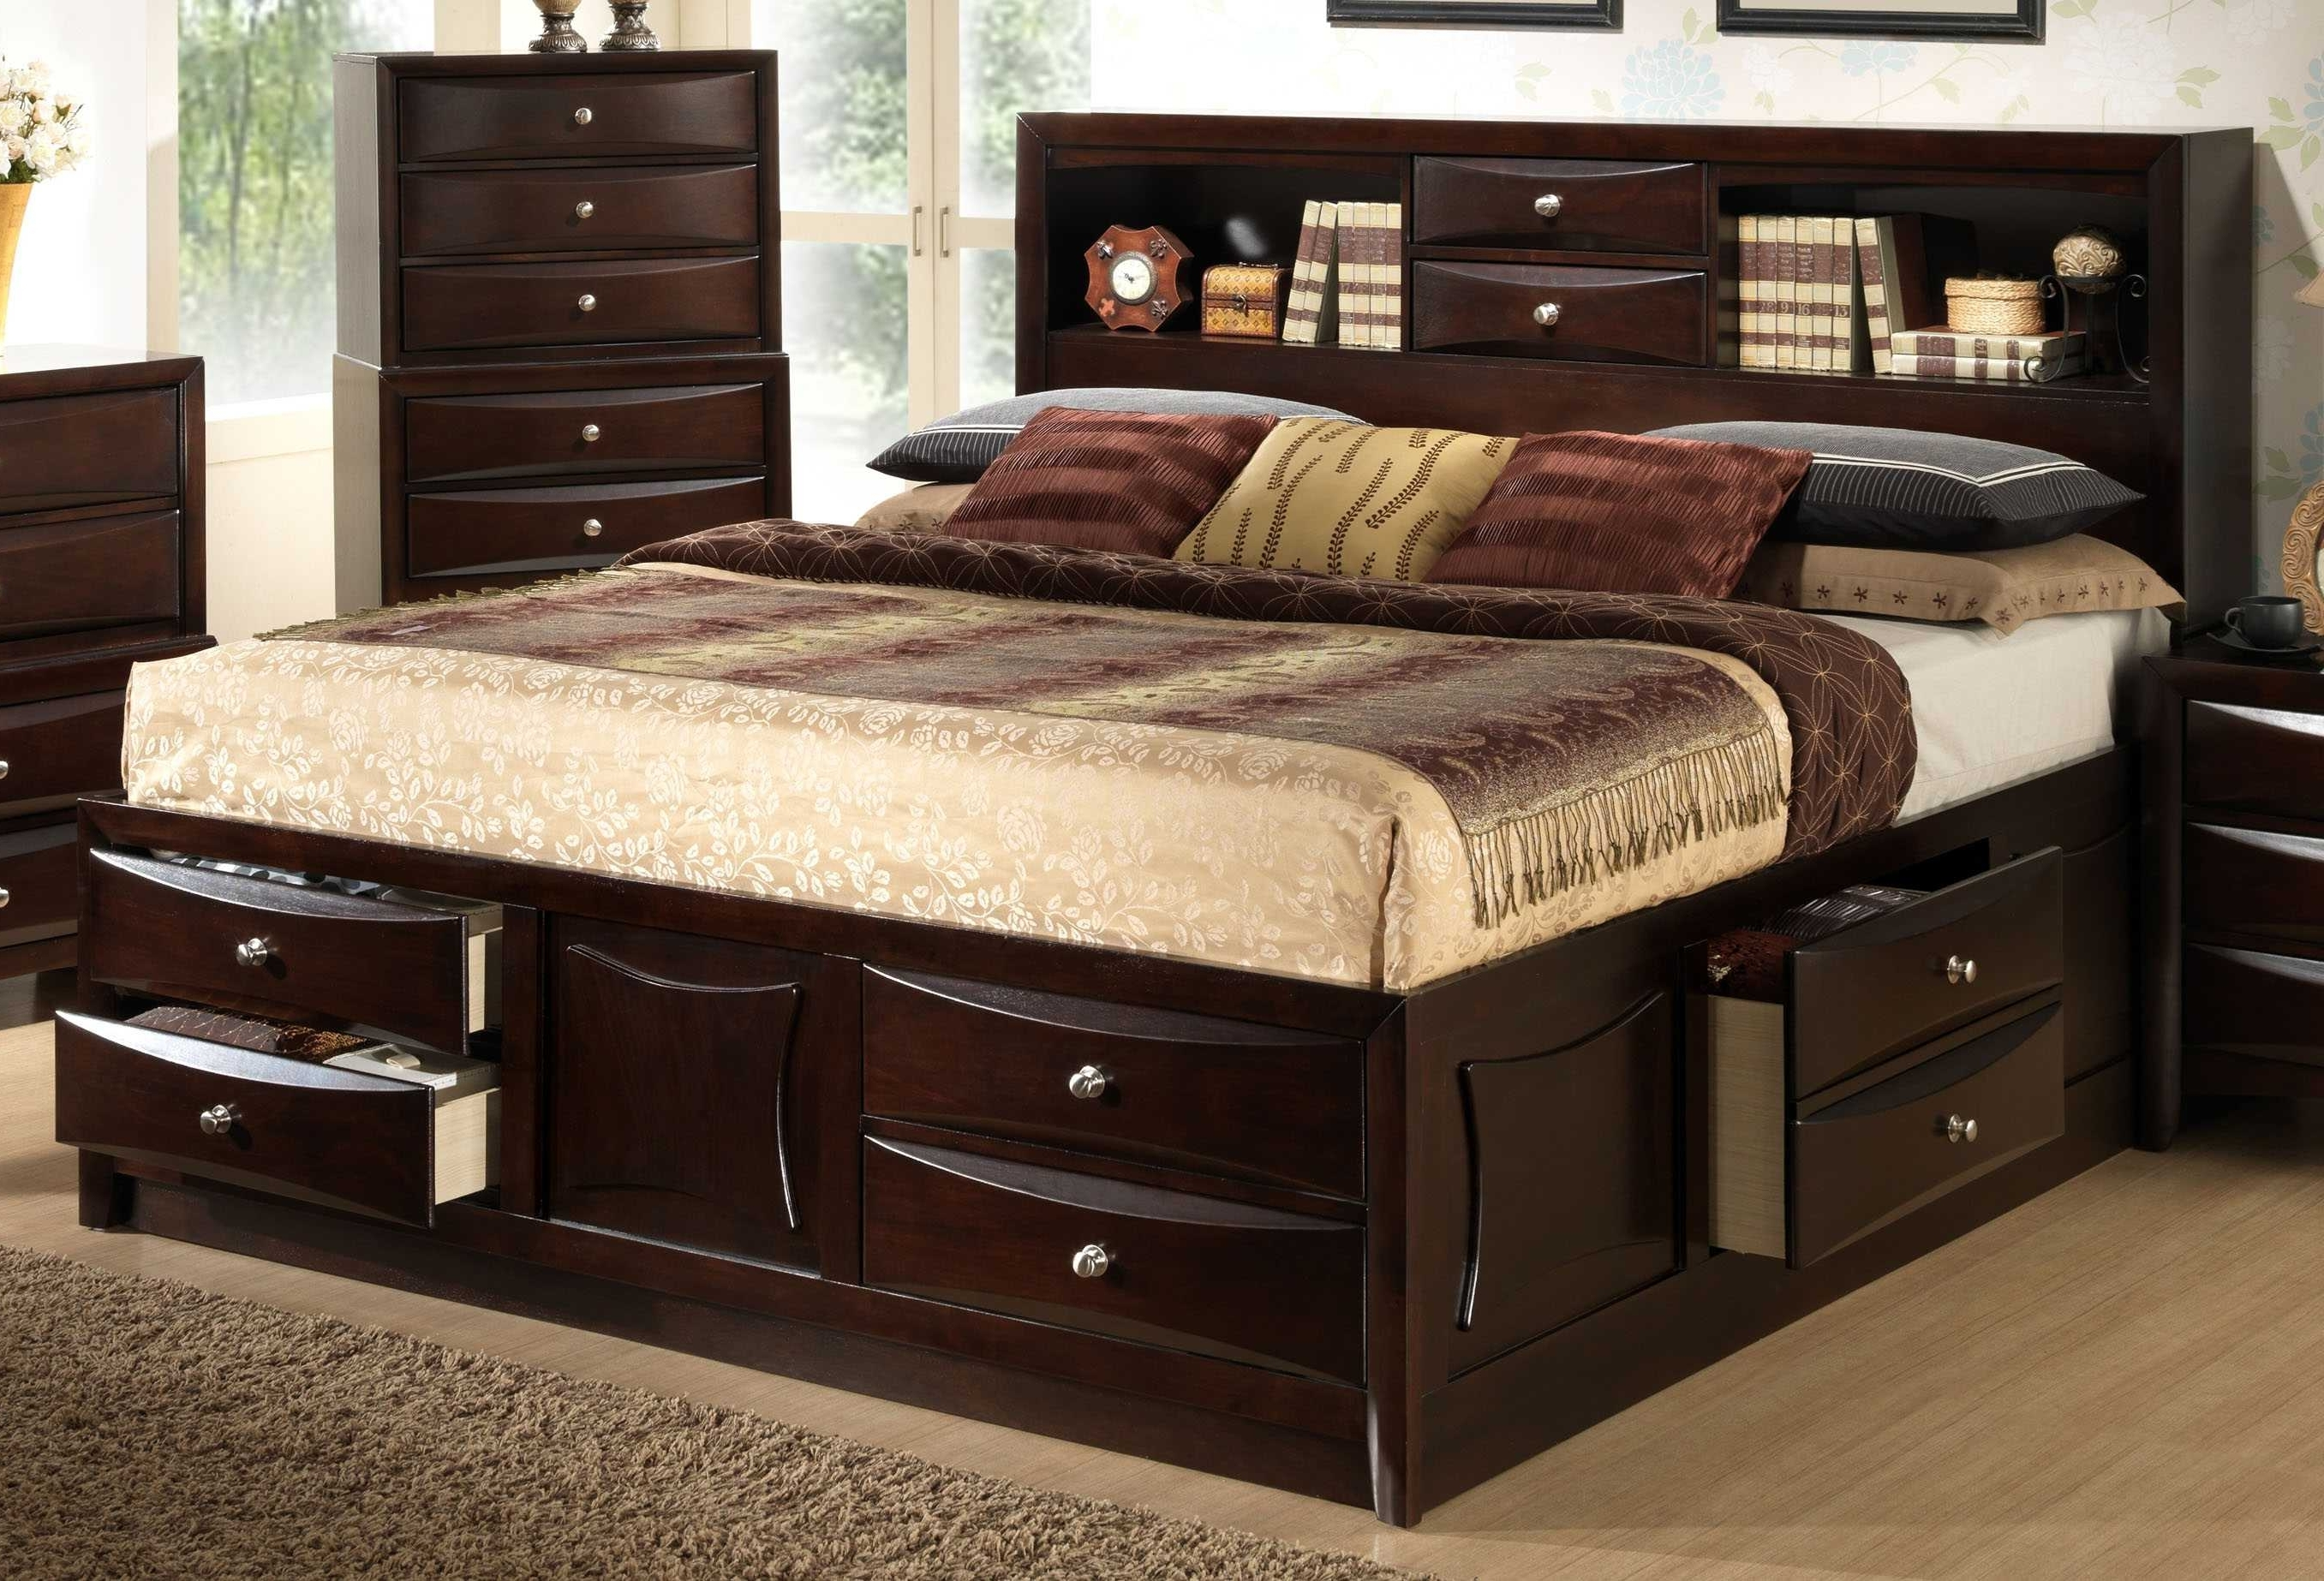 Favorite Storage Bed With Bookcase Headboard Bedroom Queen Inspirations Pertaining To Queen Bed Bookcases (View 6 of 15)